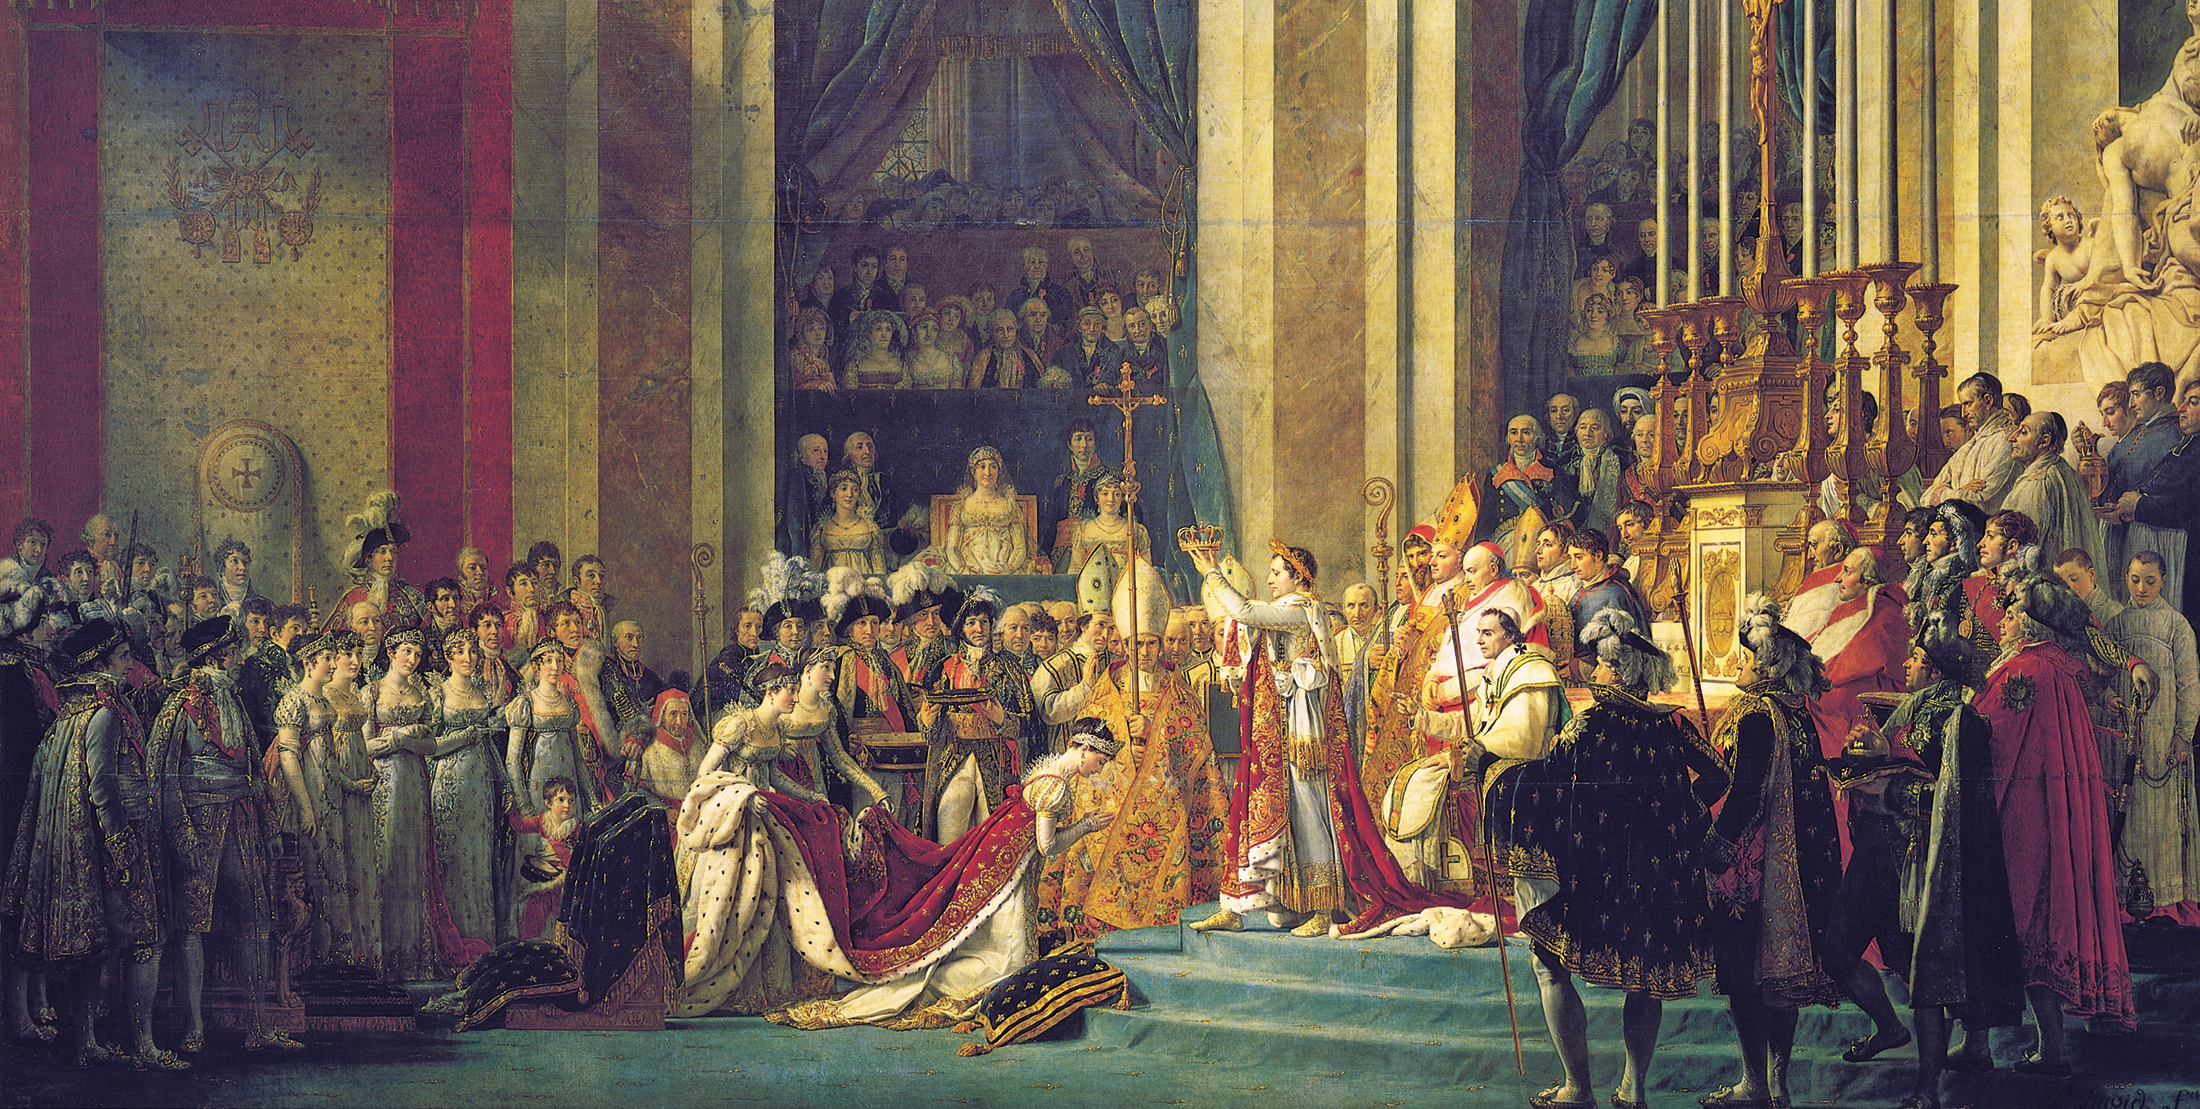 Napoleon, once an outcast, was crowned emperor in 1804.